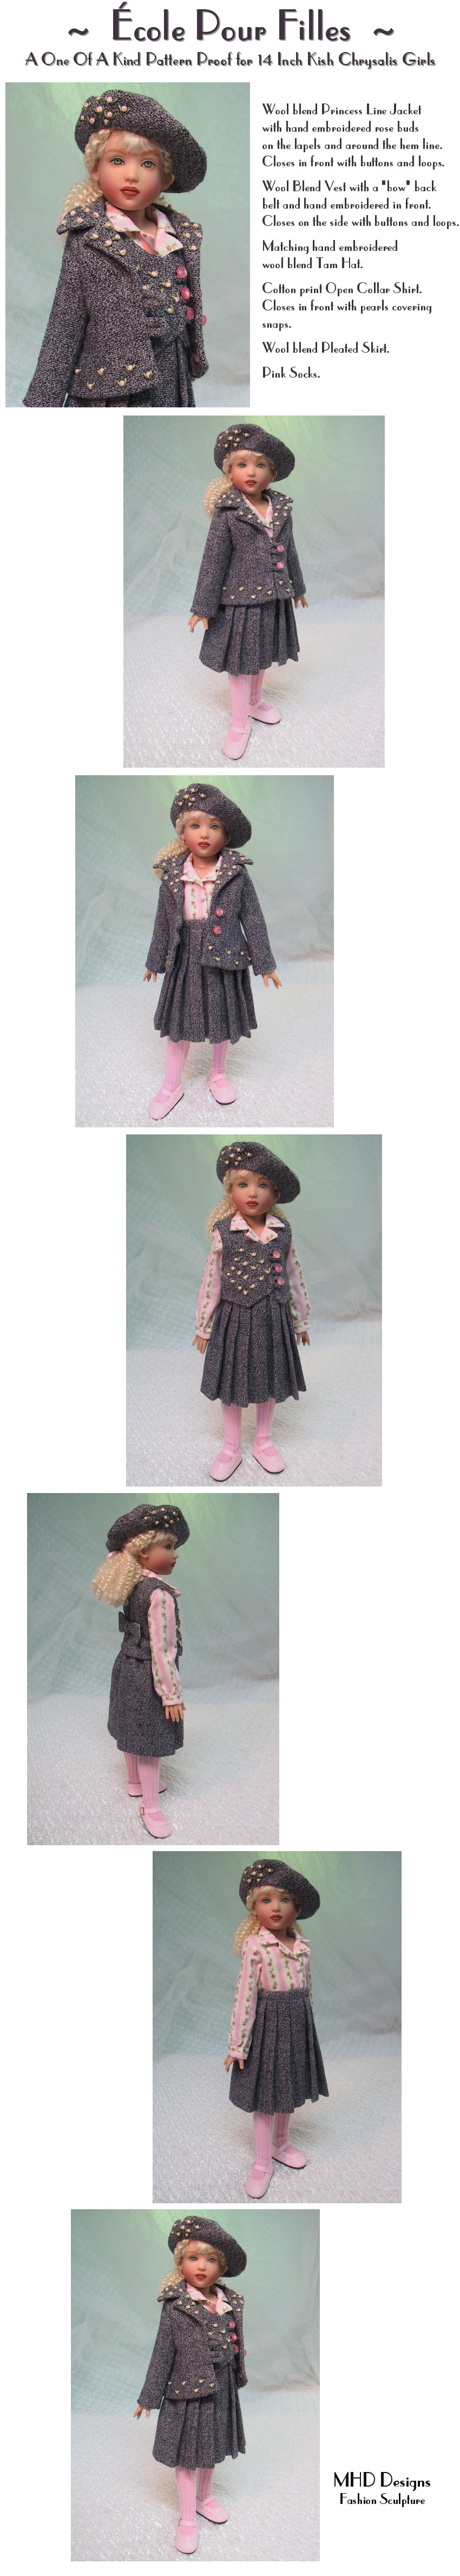 Girl's School - a One Of A Kind Pattern Proof by MHD Designs - High Resolution Photographs, your patience is appreciated!